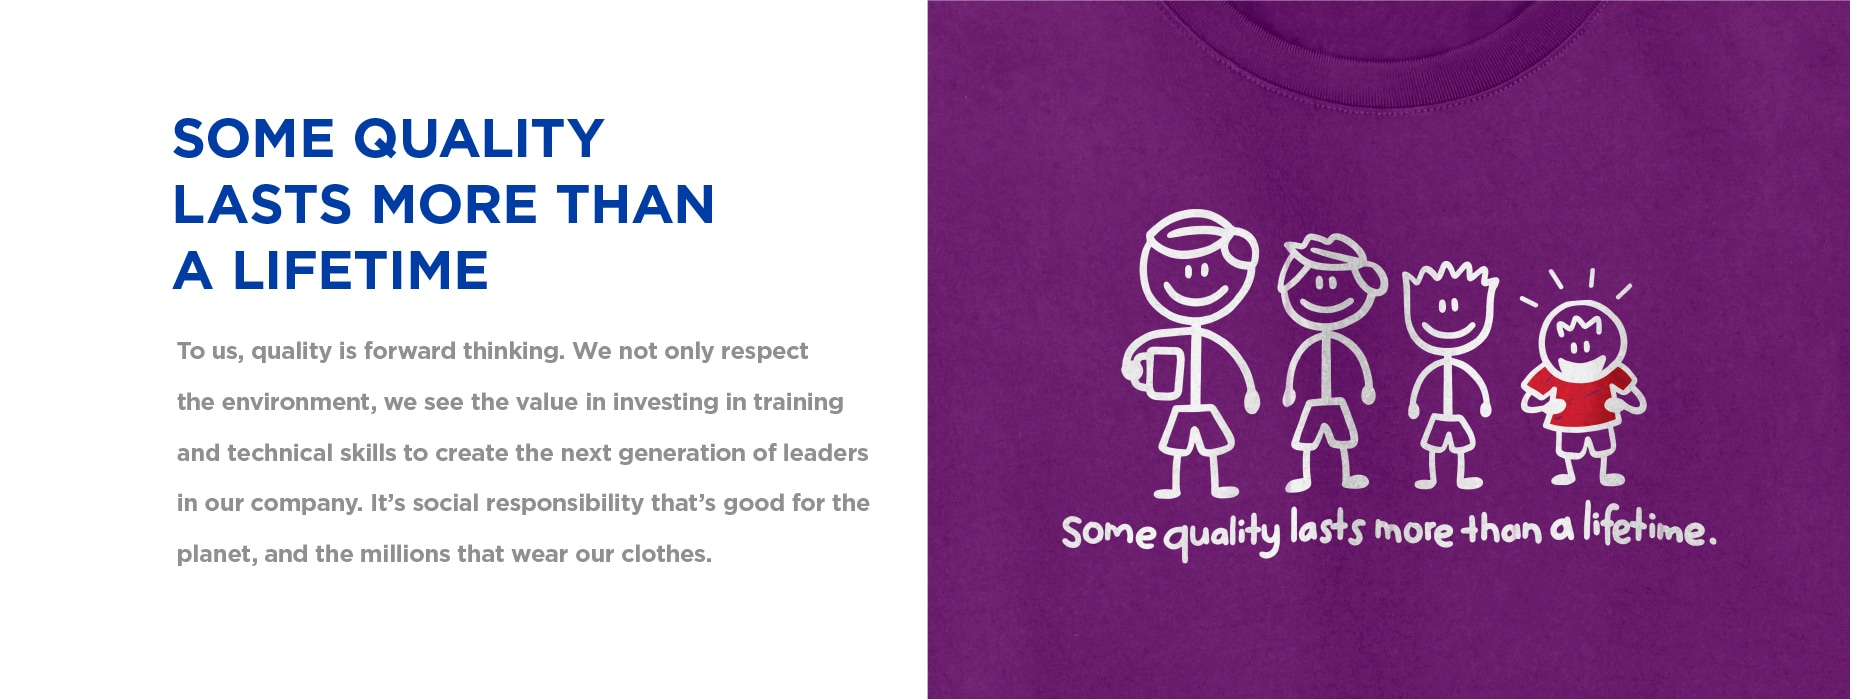 Some Quality Last More Than A Lifetime - To us, quality is forward thinking.| Gildan® USA